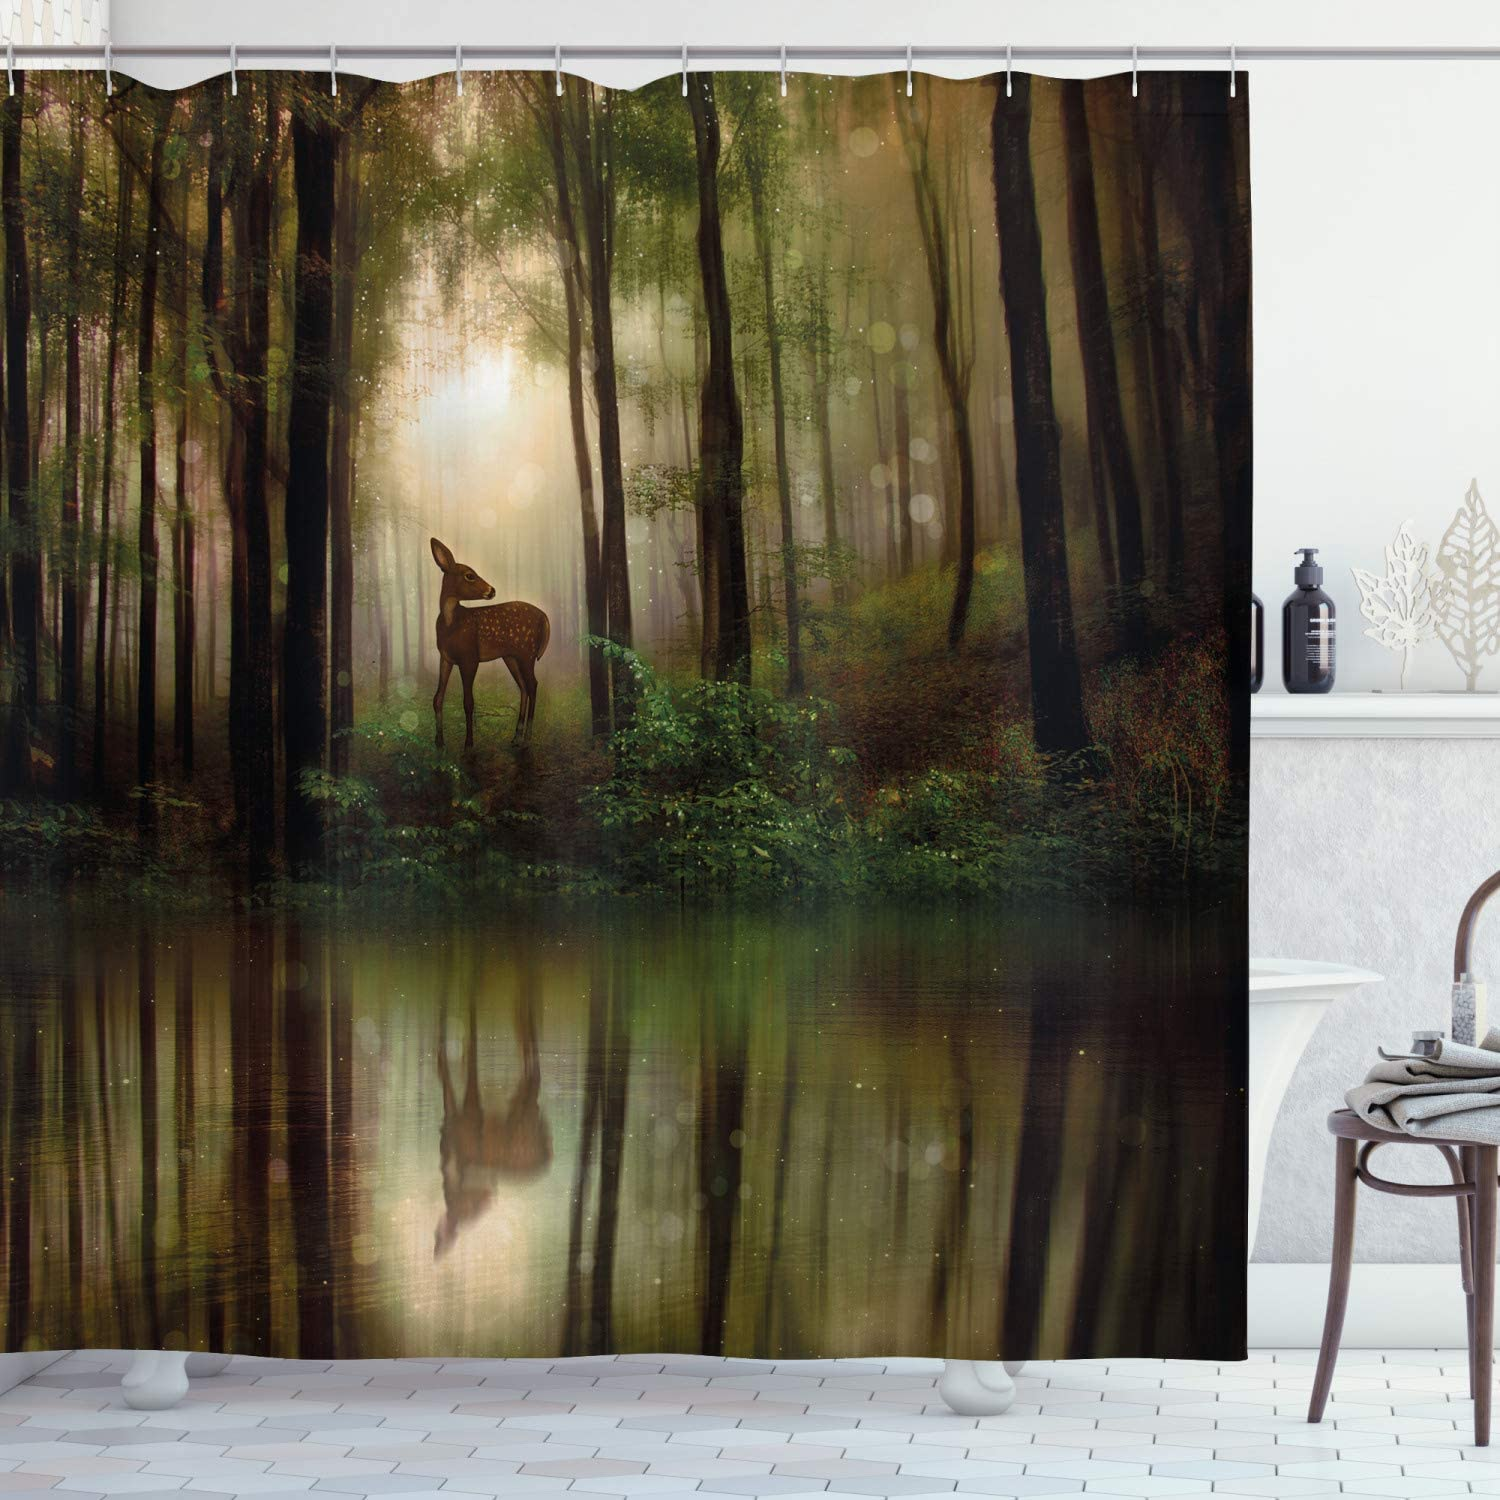 Ambesonne Nature Shower Curtain, Baby Deer in The Forest with Reflection on Lake Foggy Woodland Graphic, Cloth Fabric Bathroom Decor Set with Hooks, 70